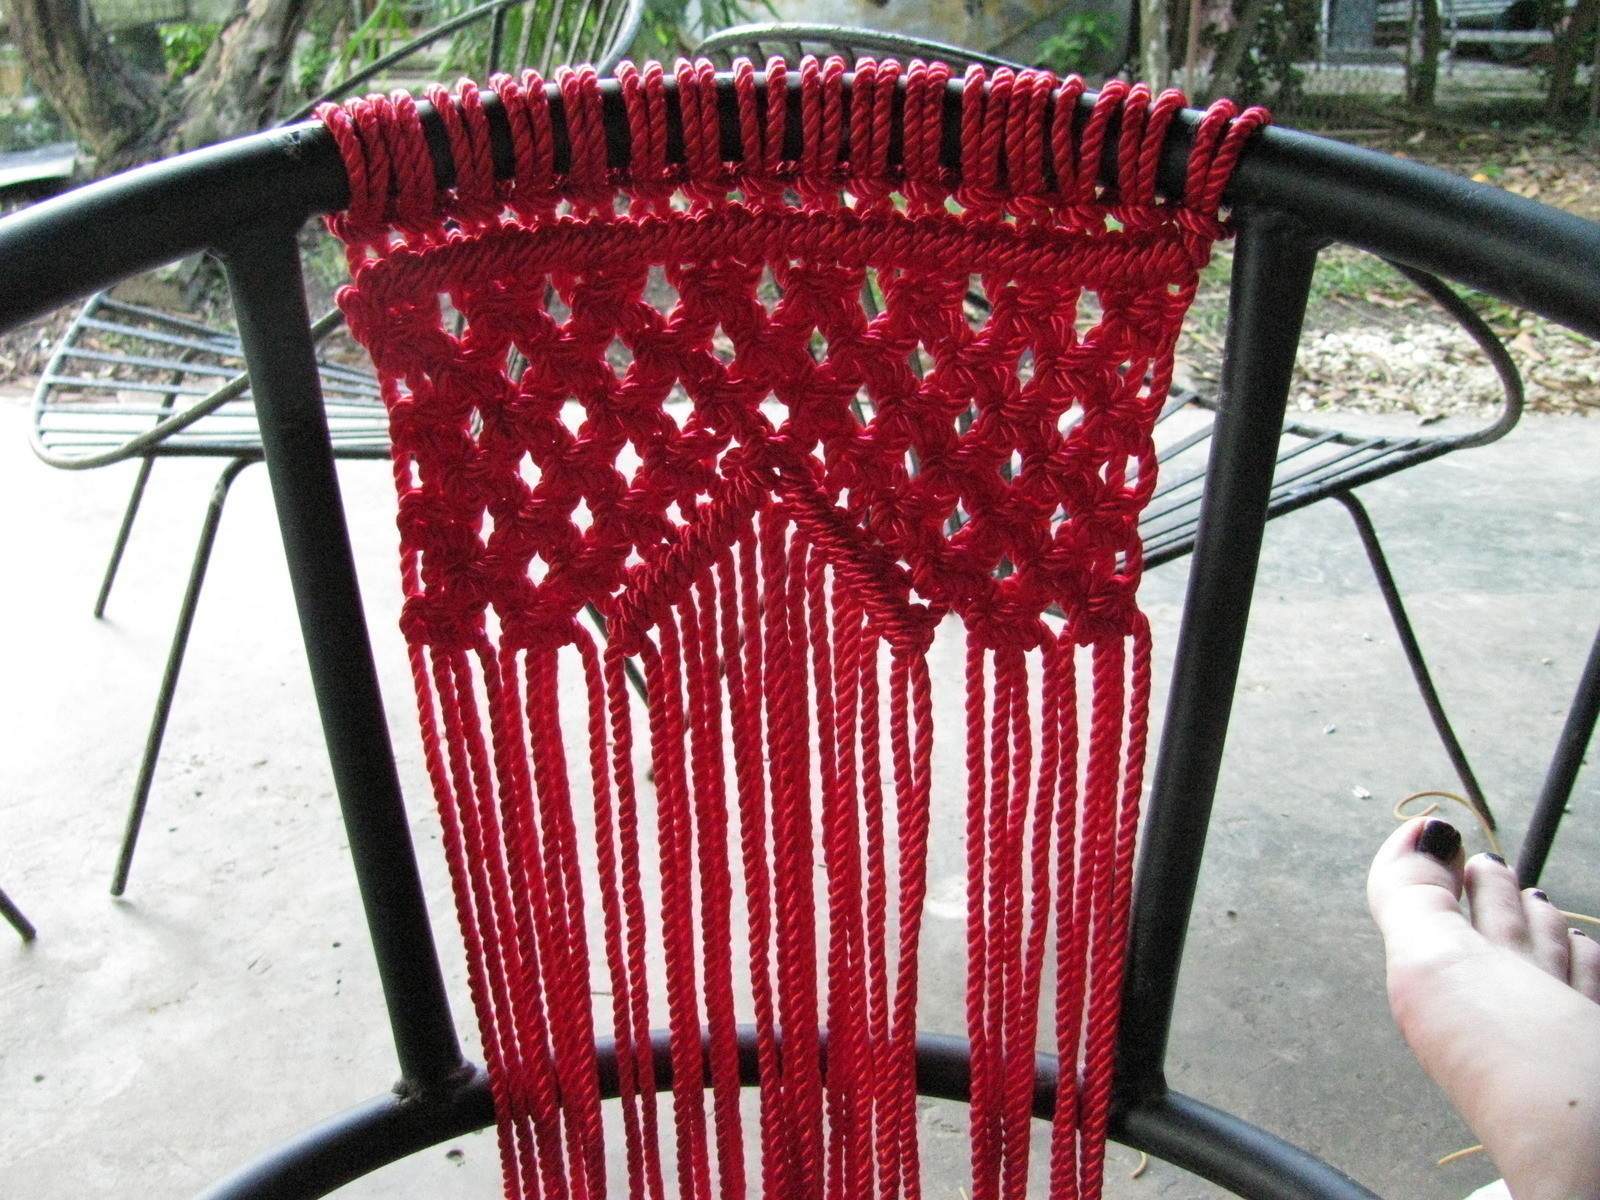 fishing chairs office chair heating pad macramé · how to make a knotting & macrame on cut out + keep by j0